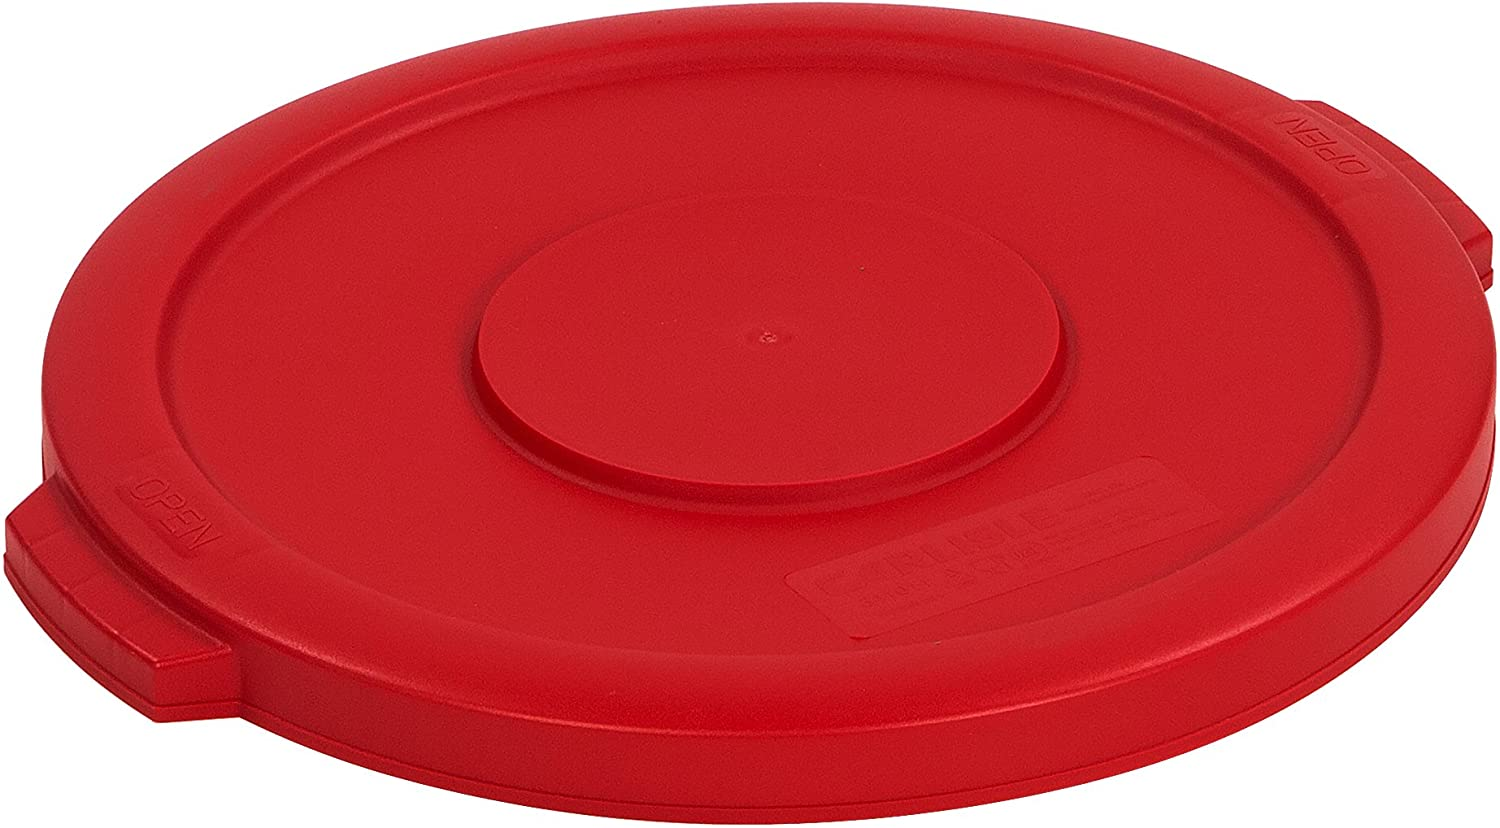 Carlisle 34101105 Bronco Round Waste Bin Food Container Lid, 10 Gallon, Red